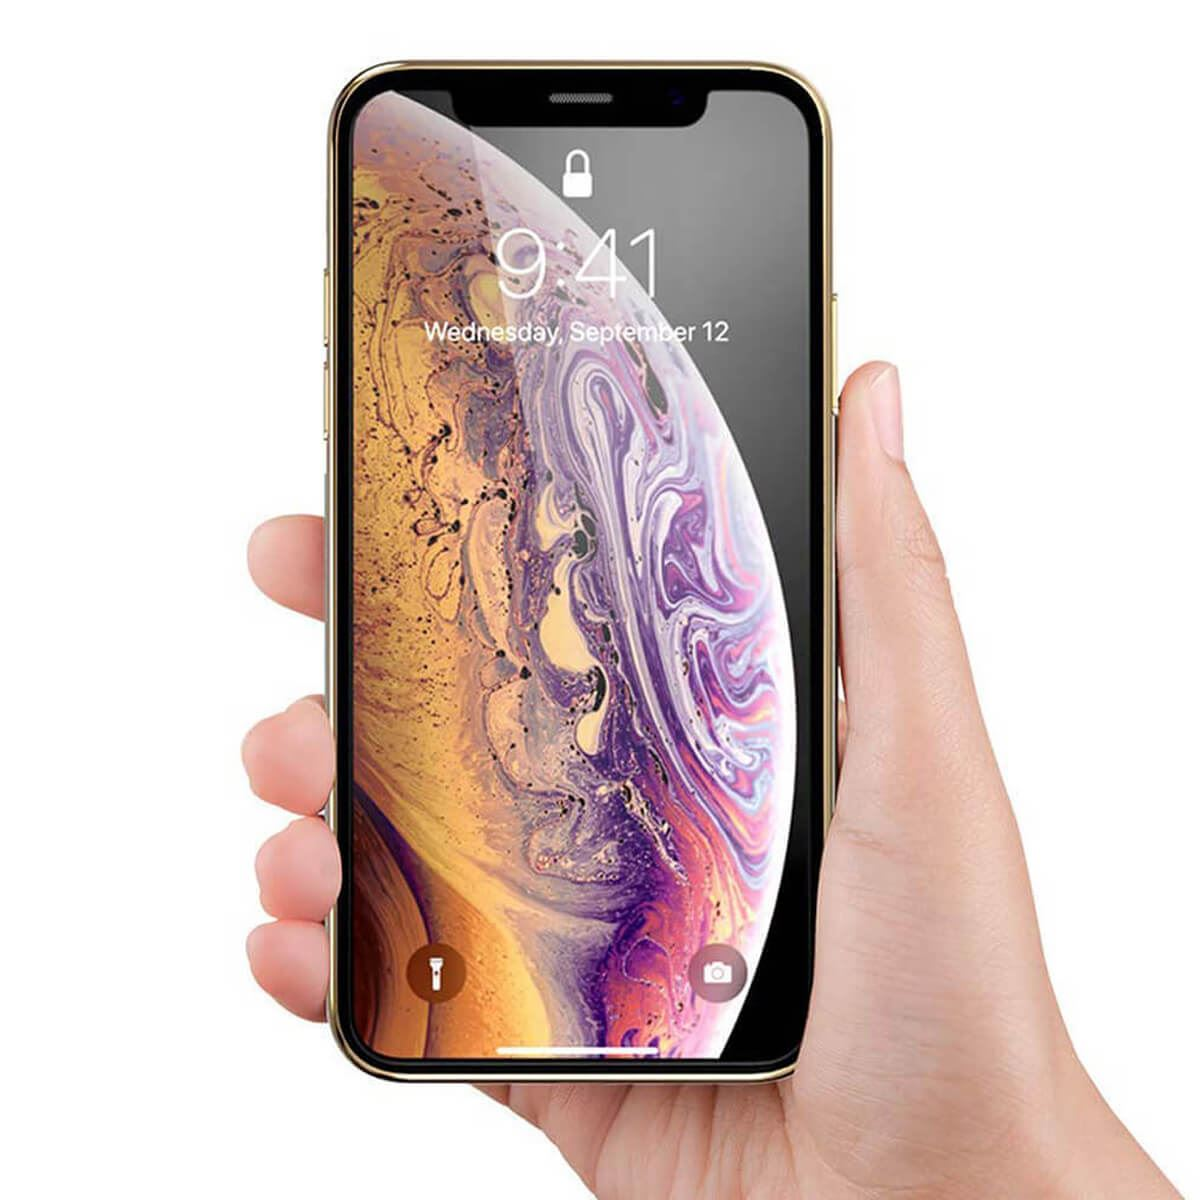 Tempered-Glass-Film-Screen-Protector-For-iPhone-12-Pro-Max-Mini-XR-XS-Max-8-7-6s thumbnail 36